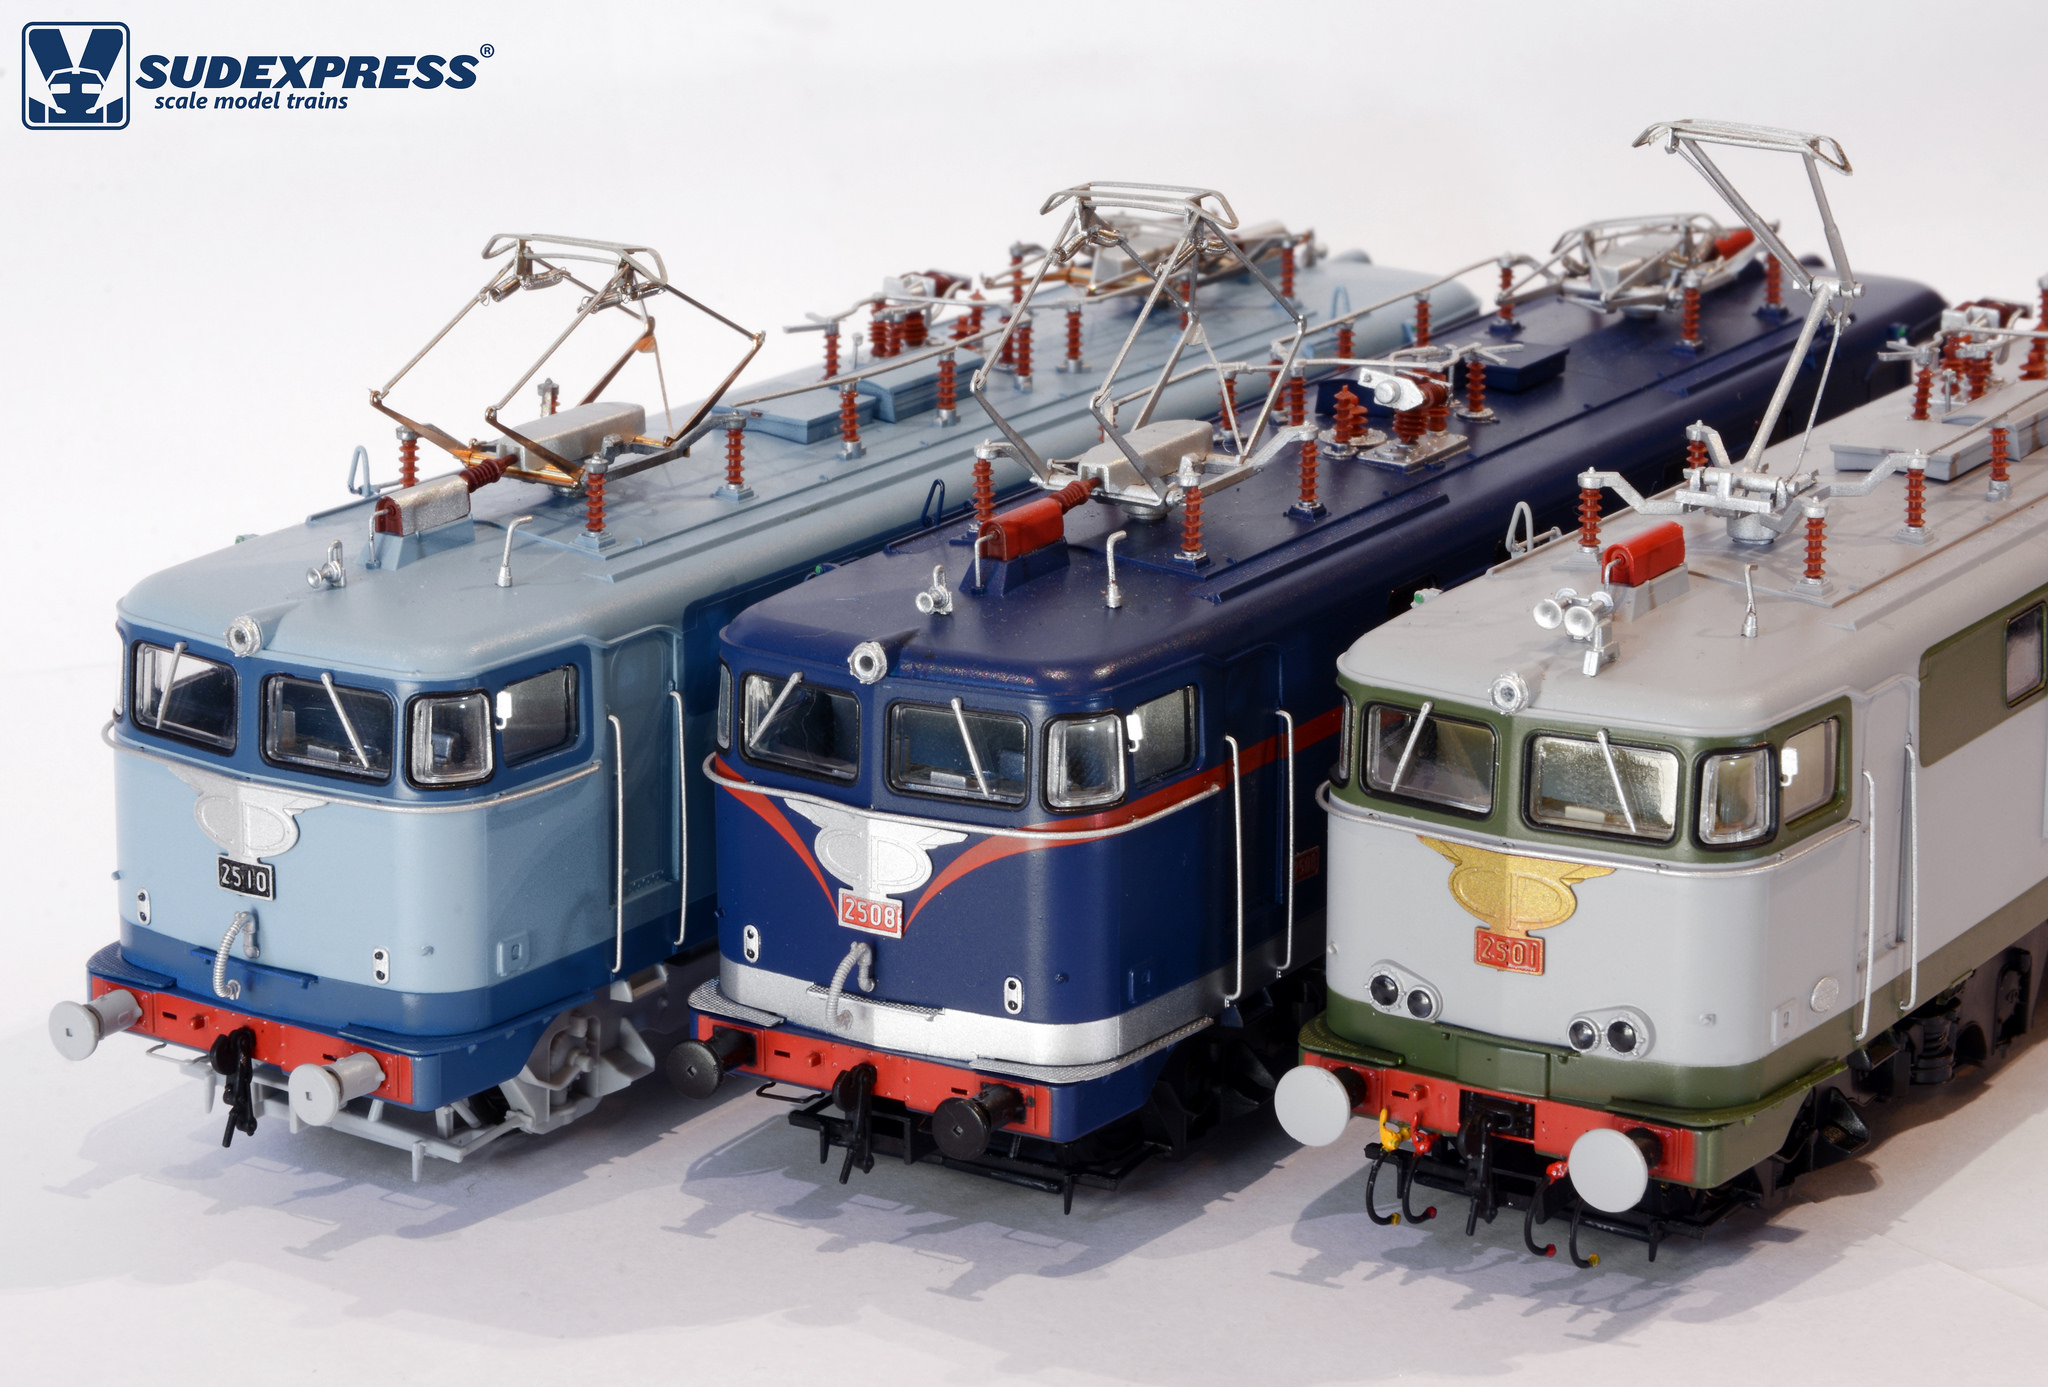 sudexpress scale model trains